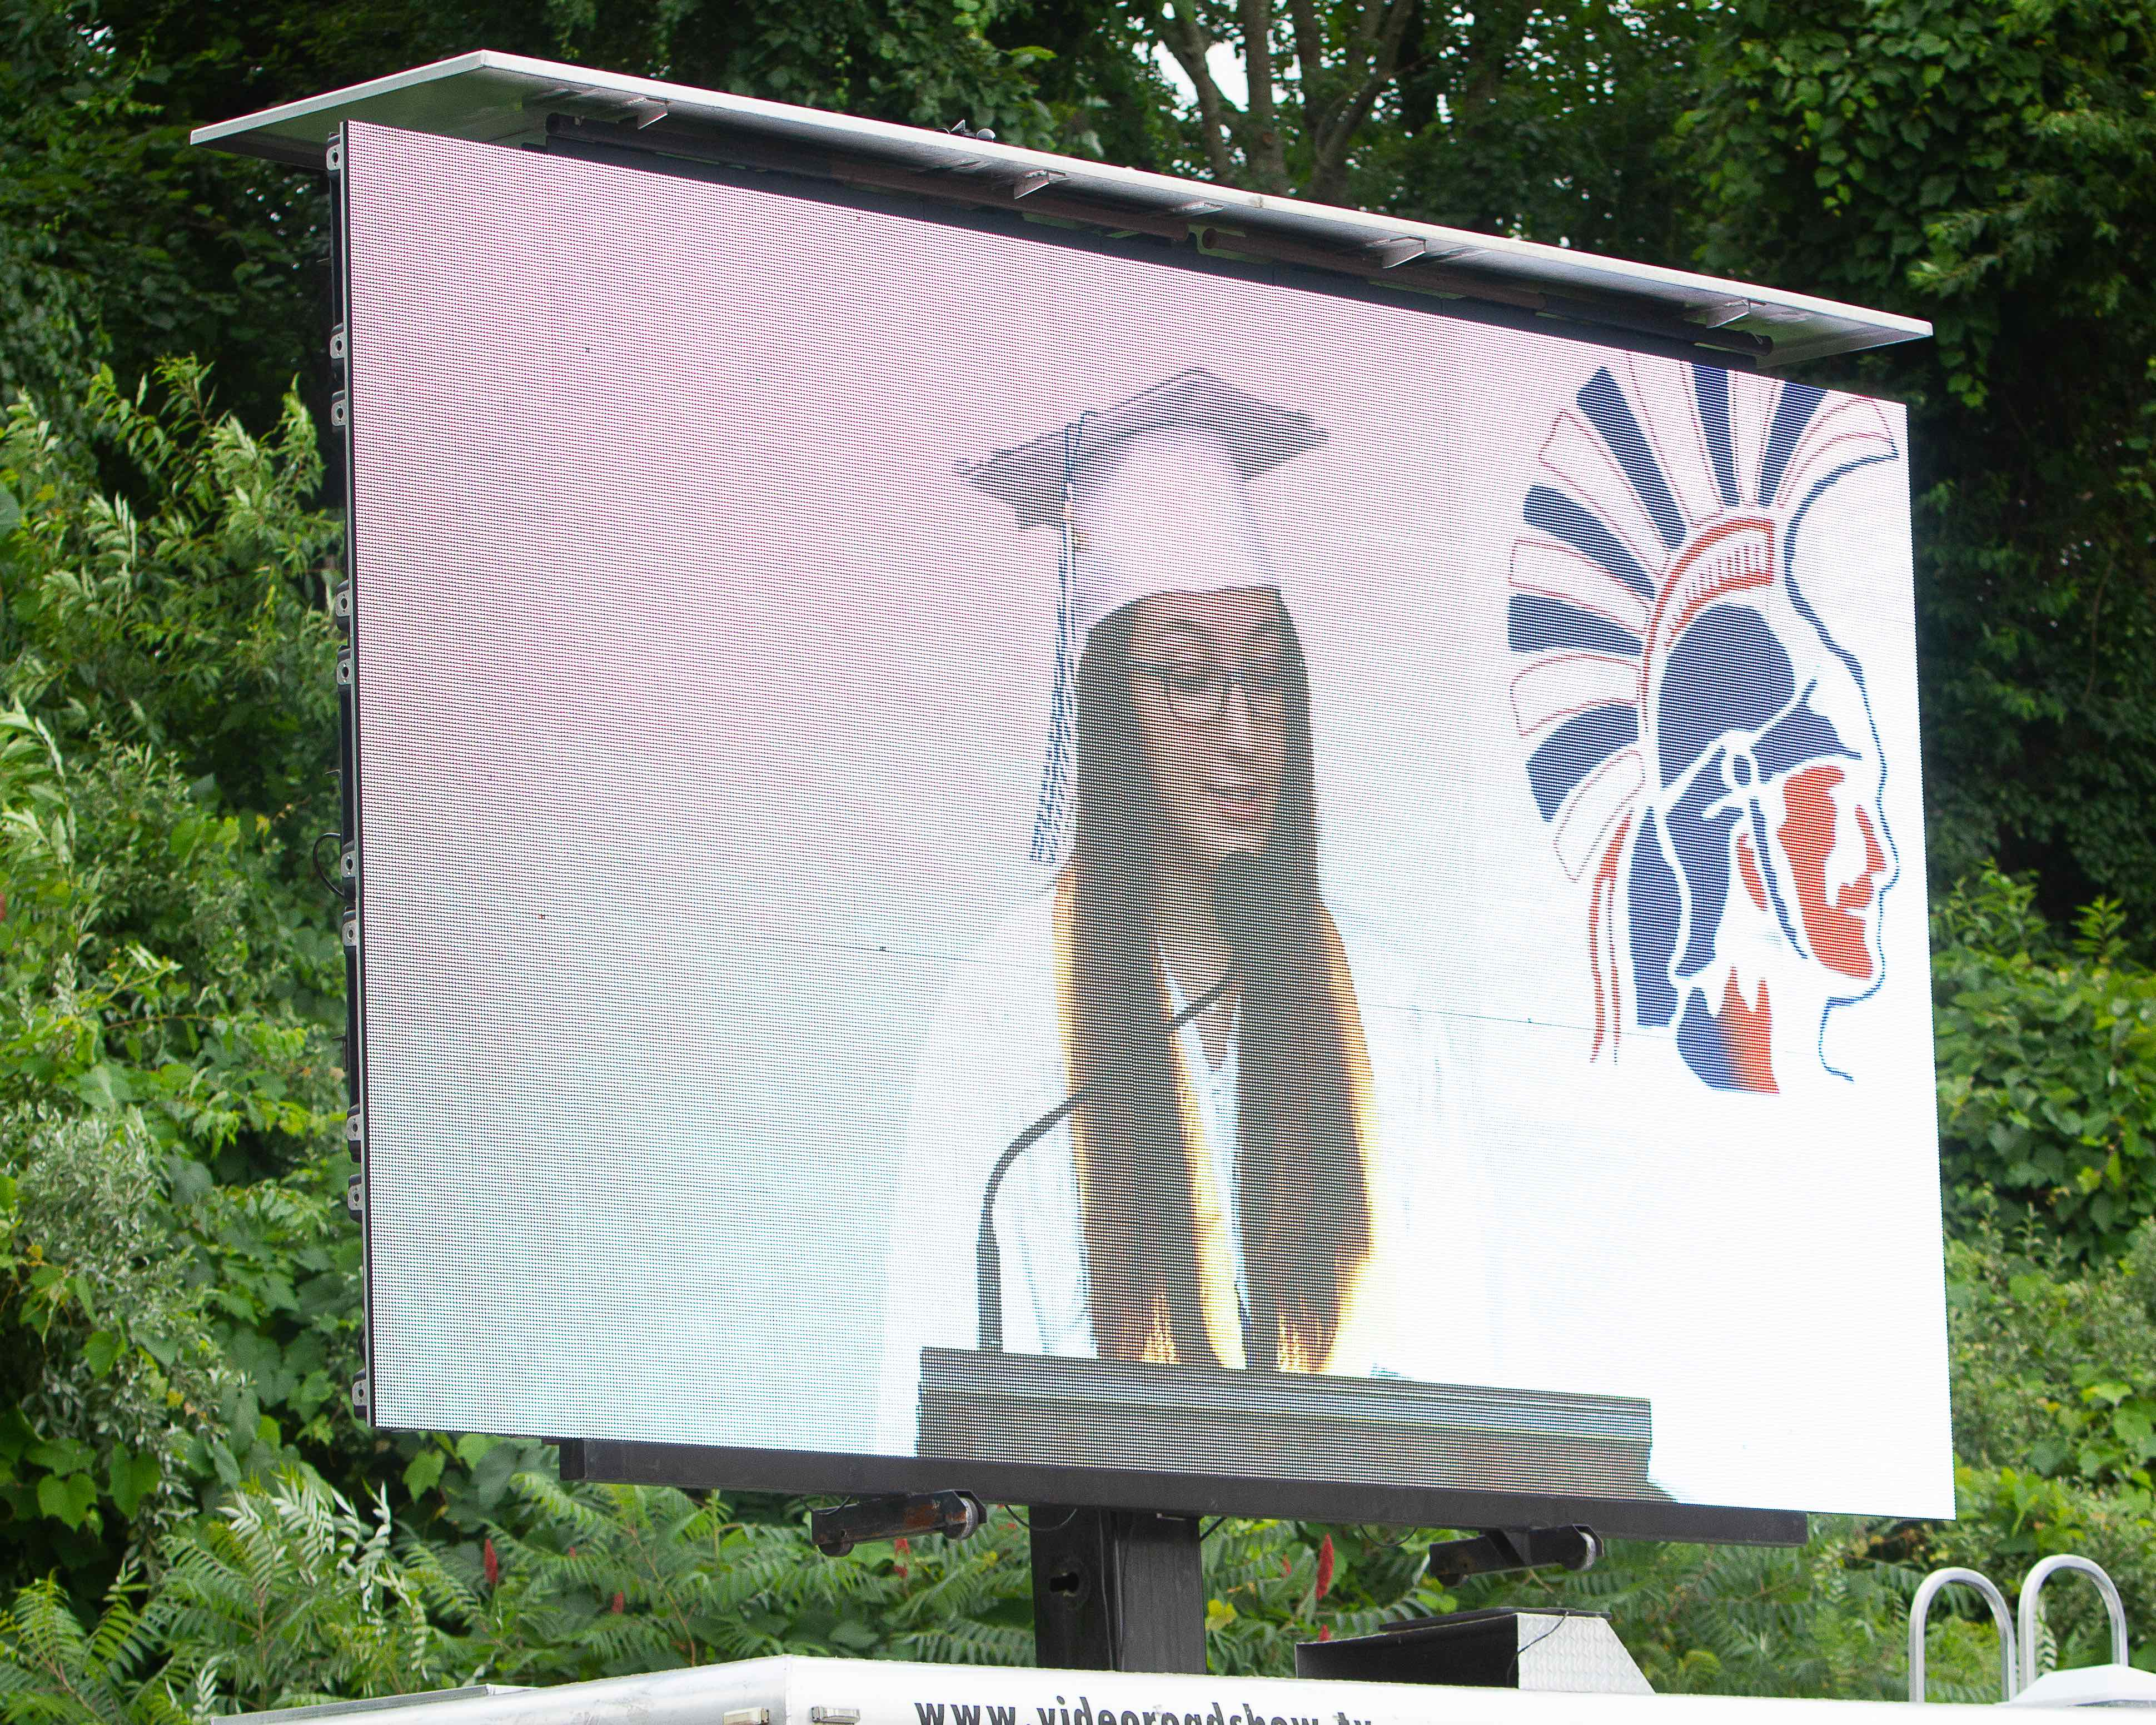 LED screen displays a graduate making a speech in the Toyota Presents Oakdale Theatre lot